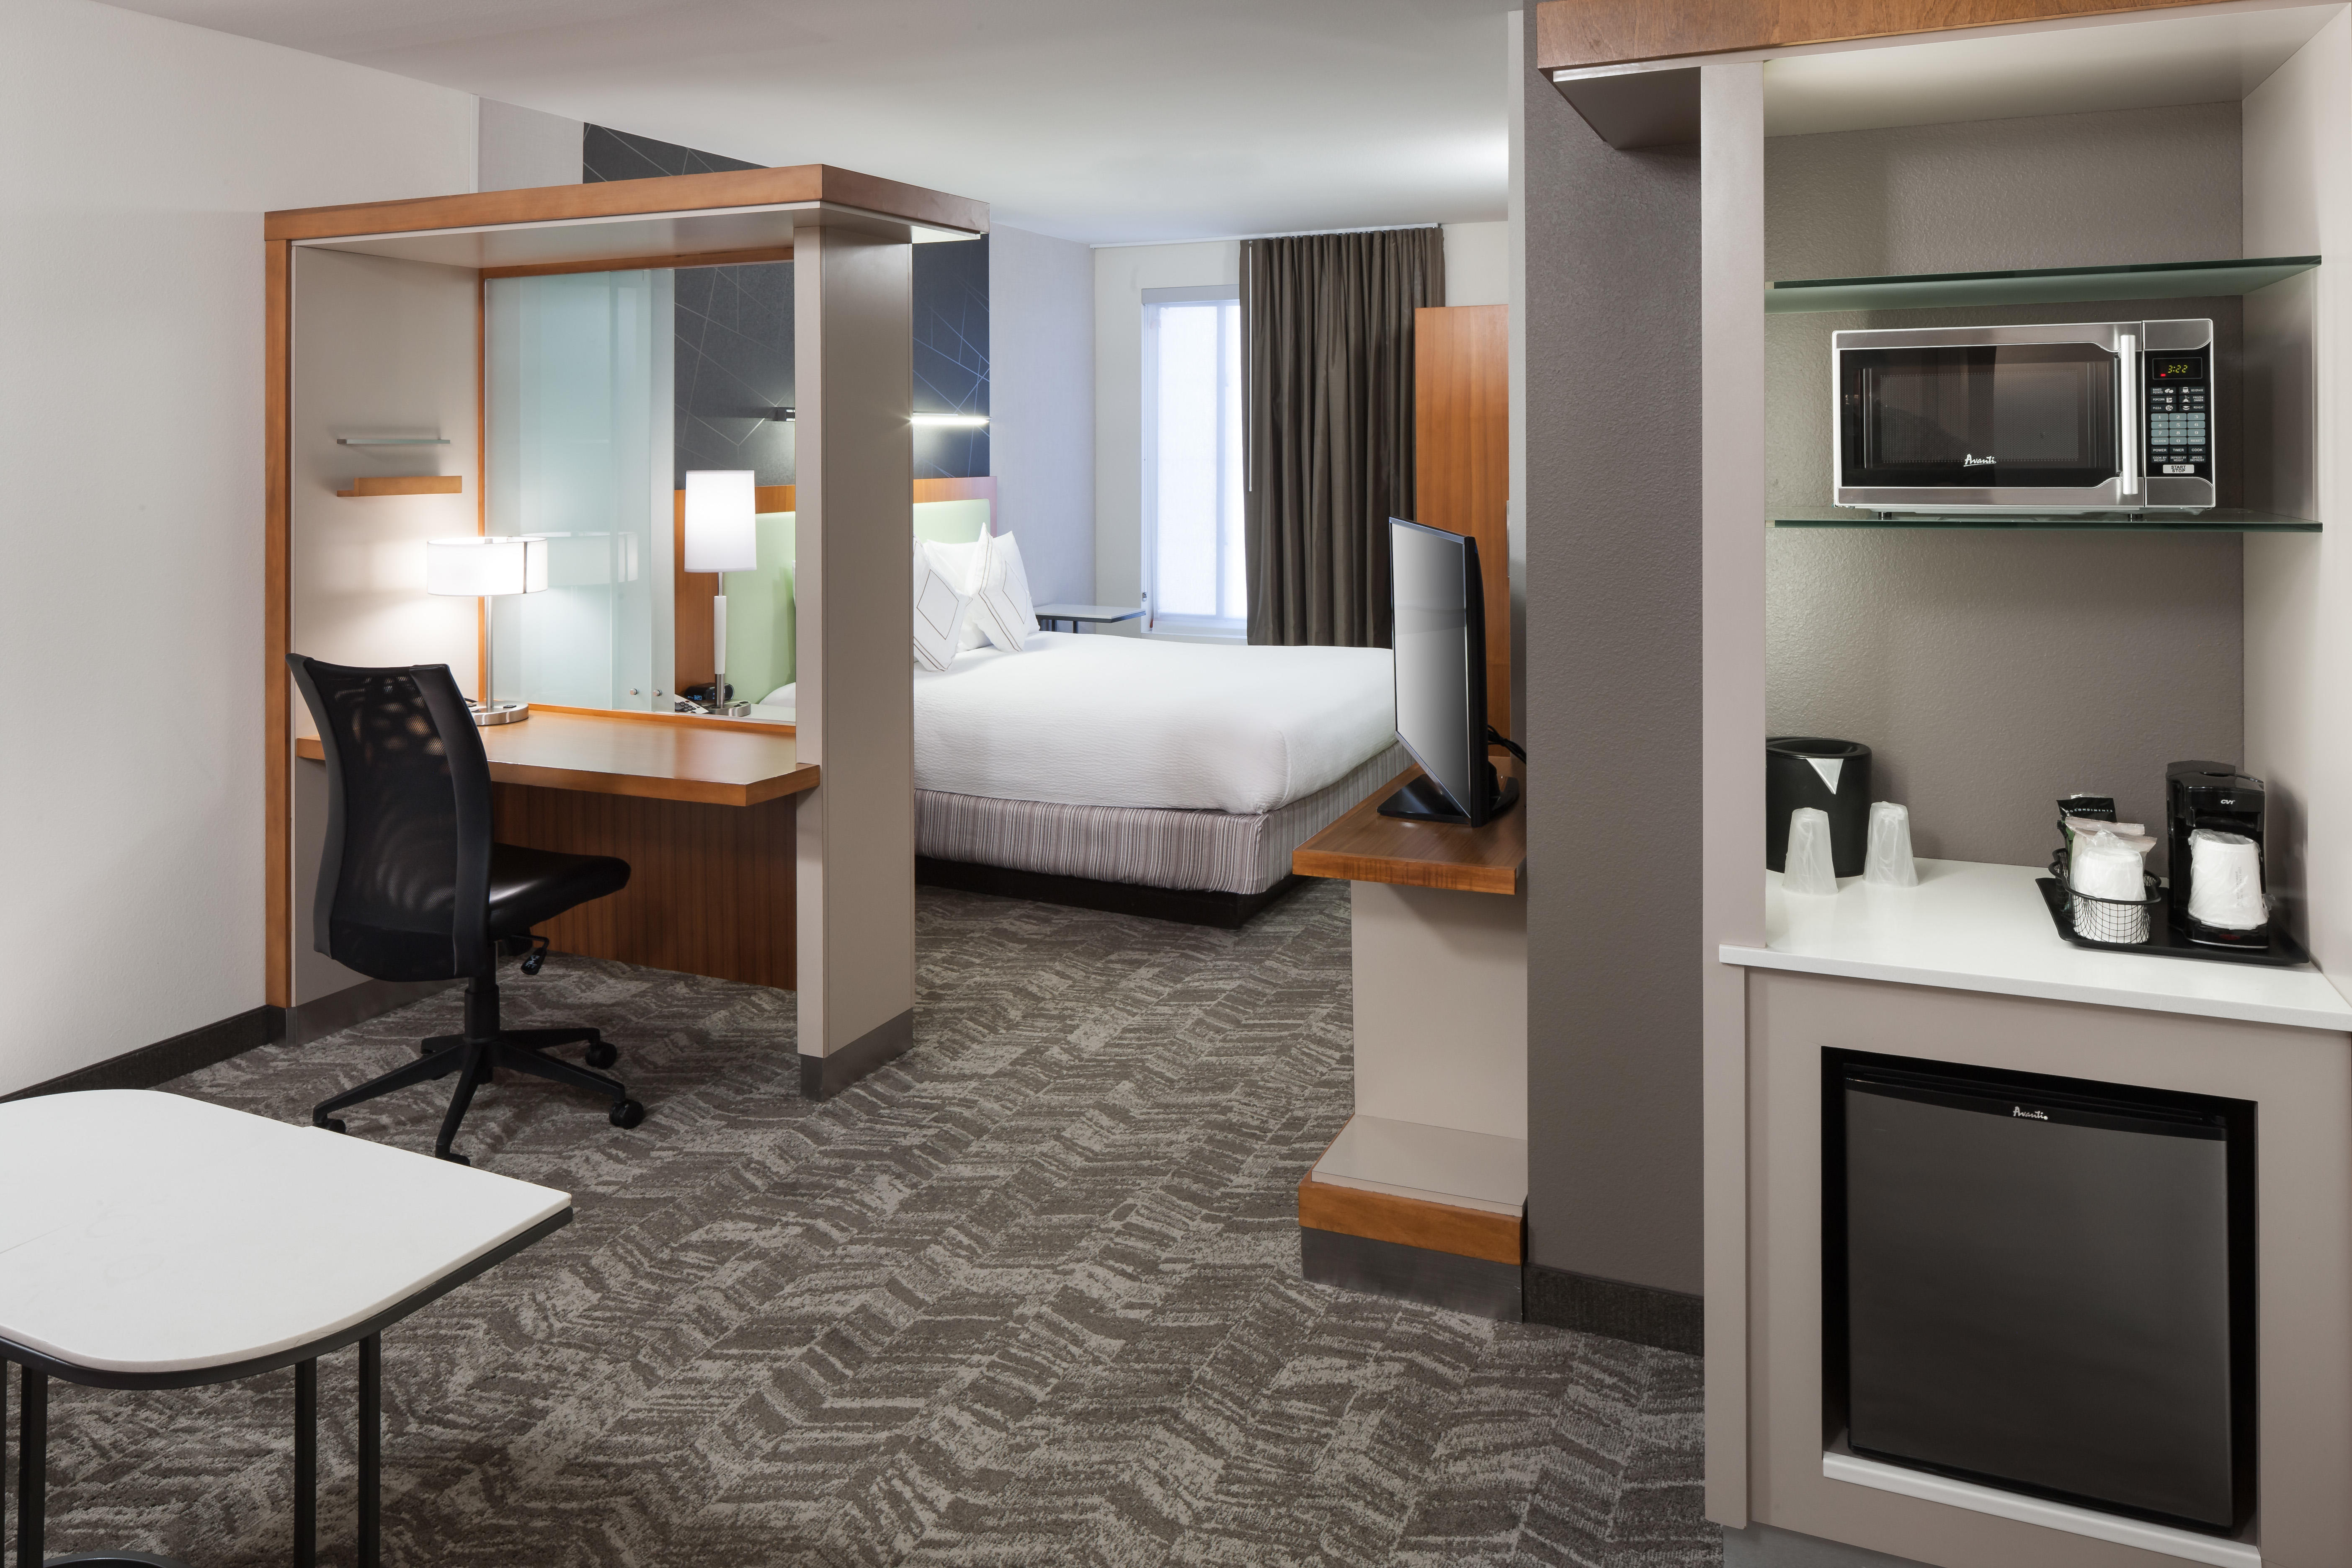 SpringHill Suites by Marriott Salt Lake City Airport image 1